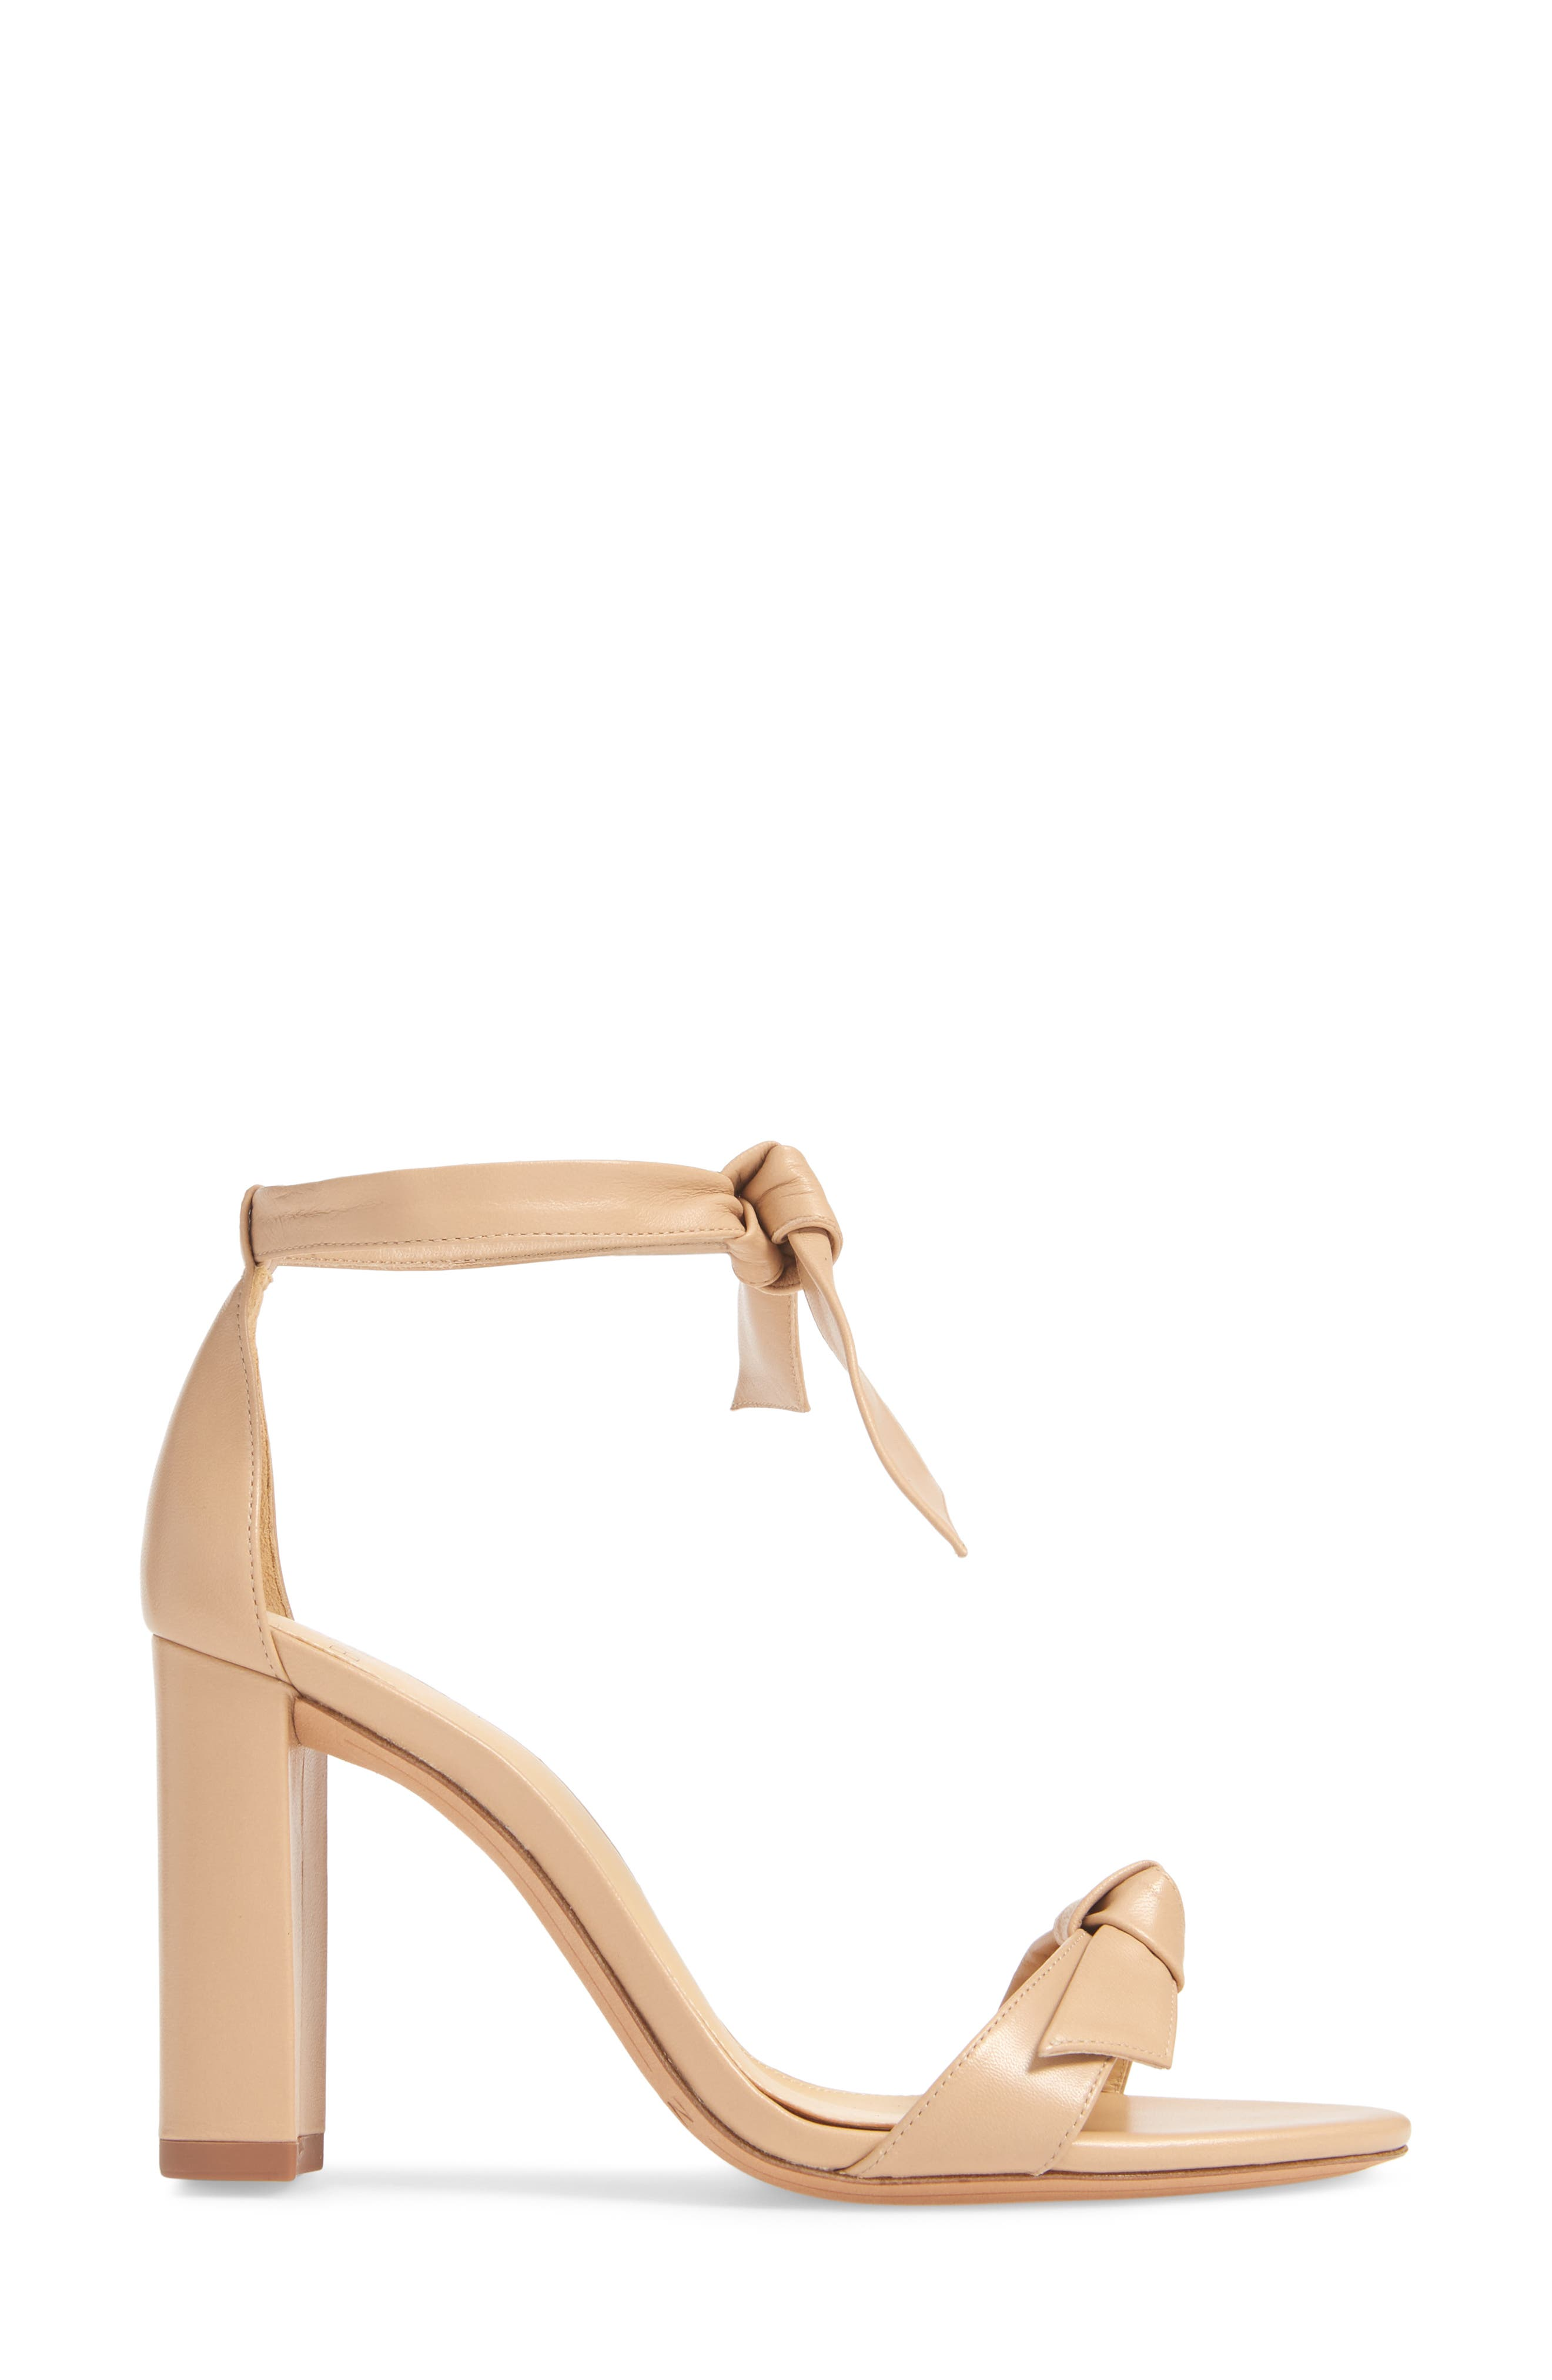 Clarita Knotted Sandal,                             Alternate thumbnail 3, color,                             NUDE LEATHER